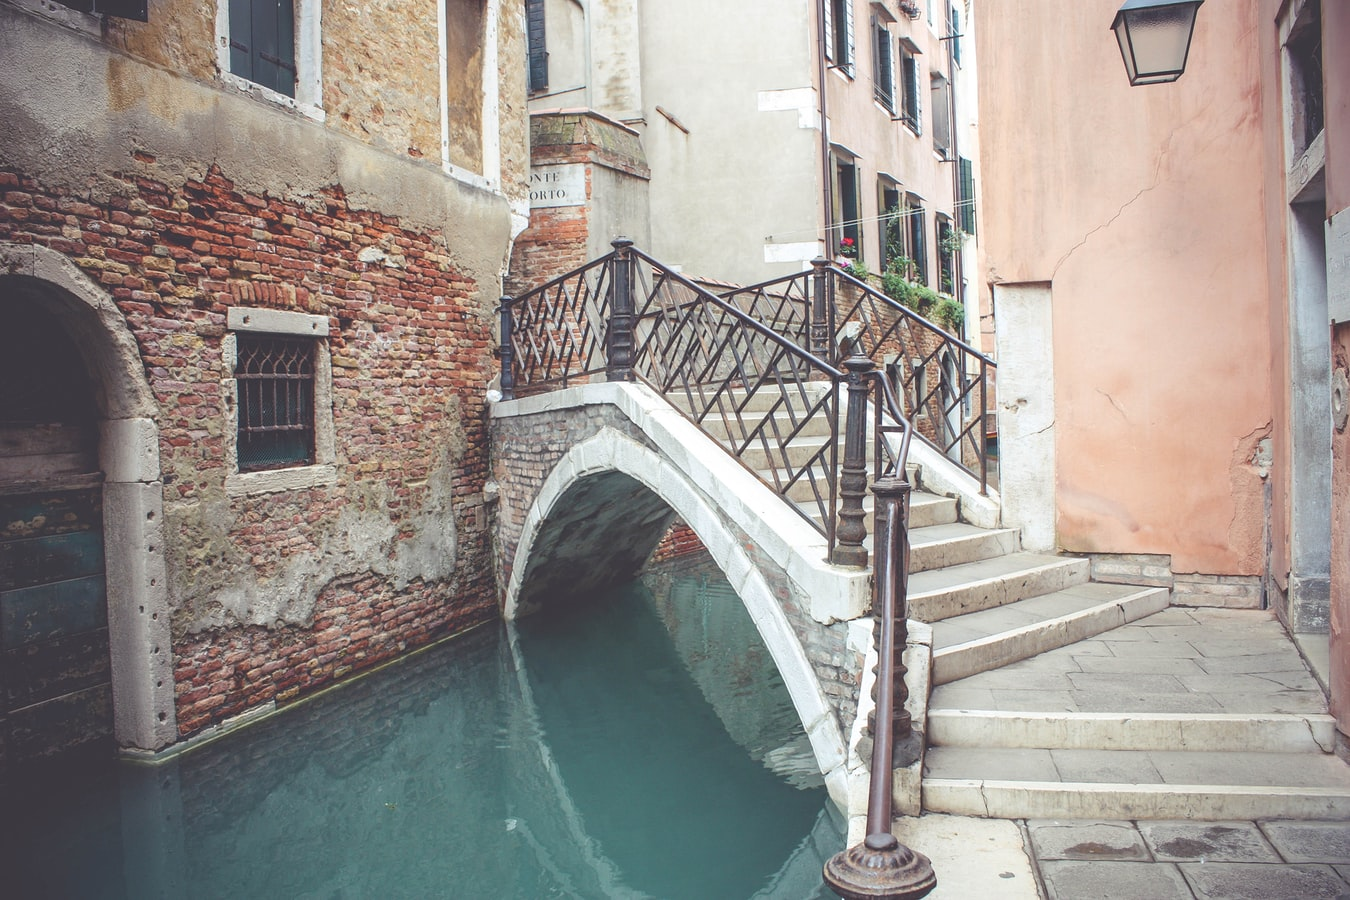 Opinions about trips to Venice. Opinions about restaurants, clubs and cafes.